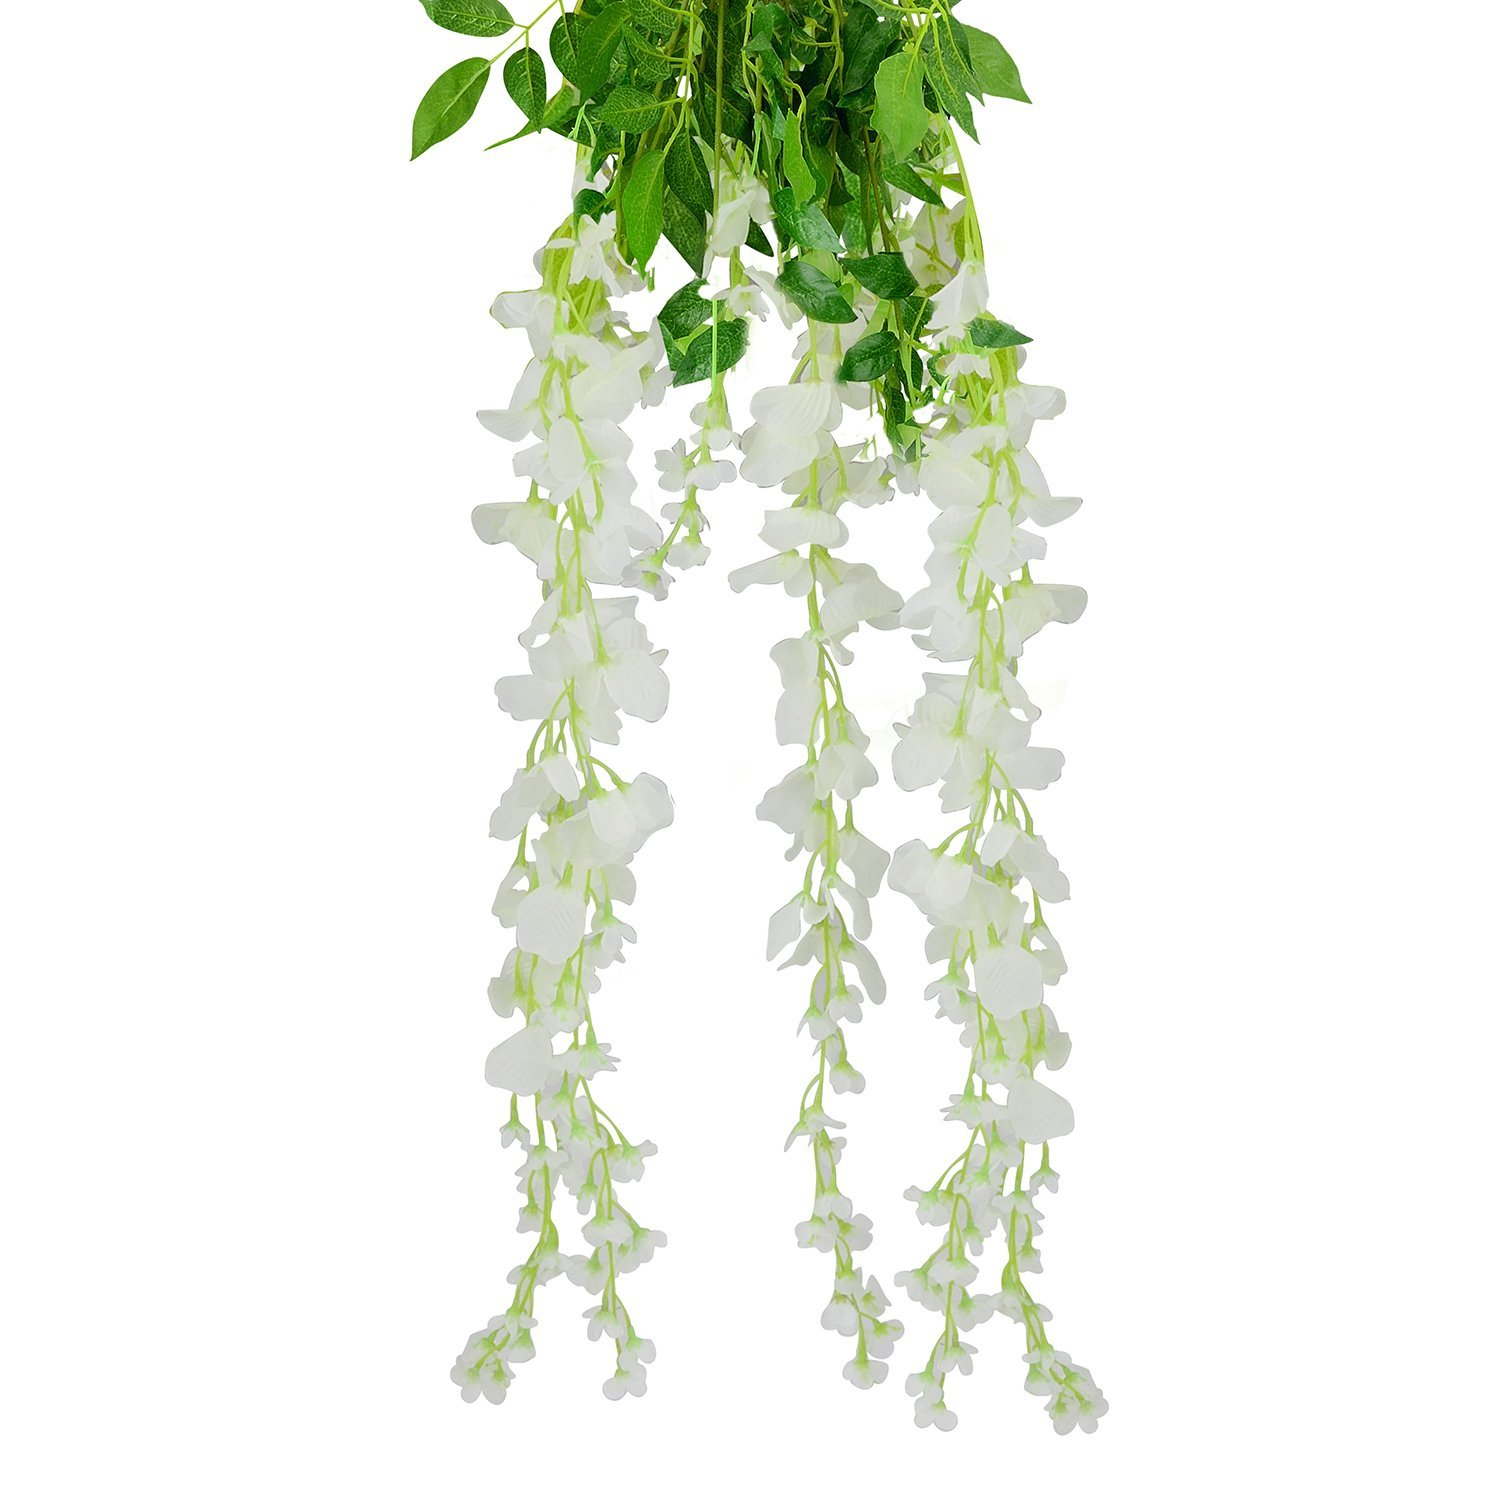 Ttoyouu Set Of 4 Artificial Fake Wisteria Vine Ratta Hanging Garland Silk Flowers String Home Party